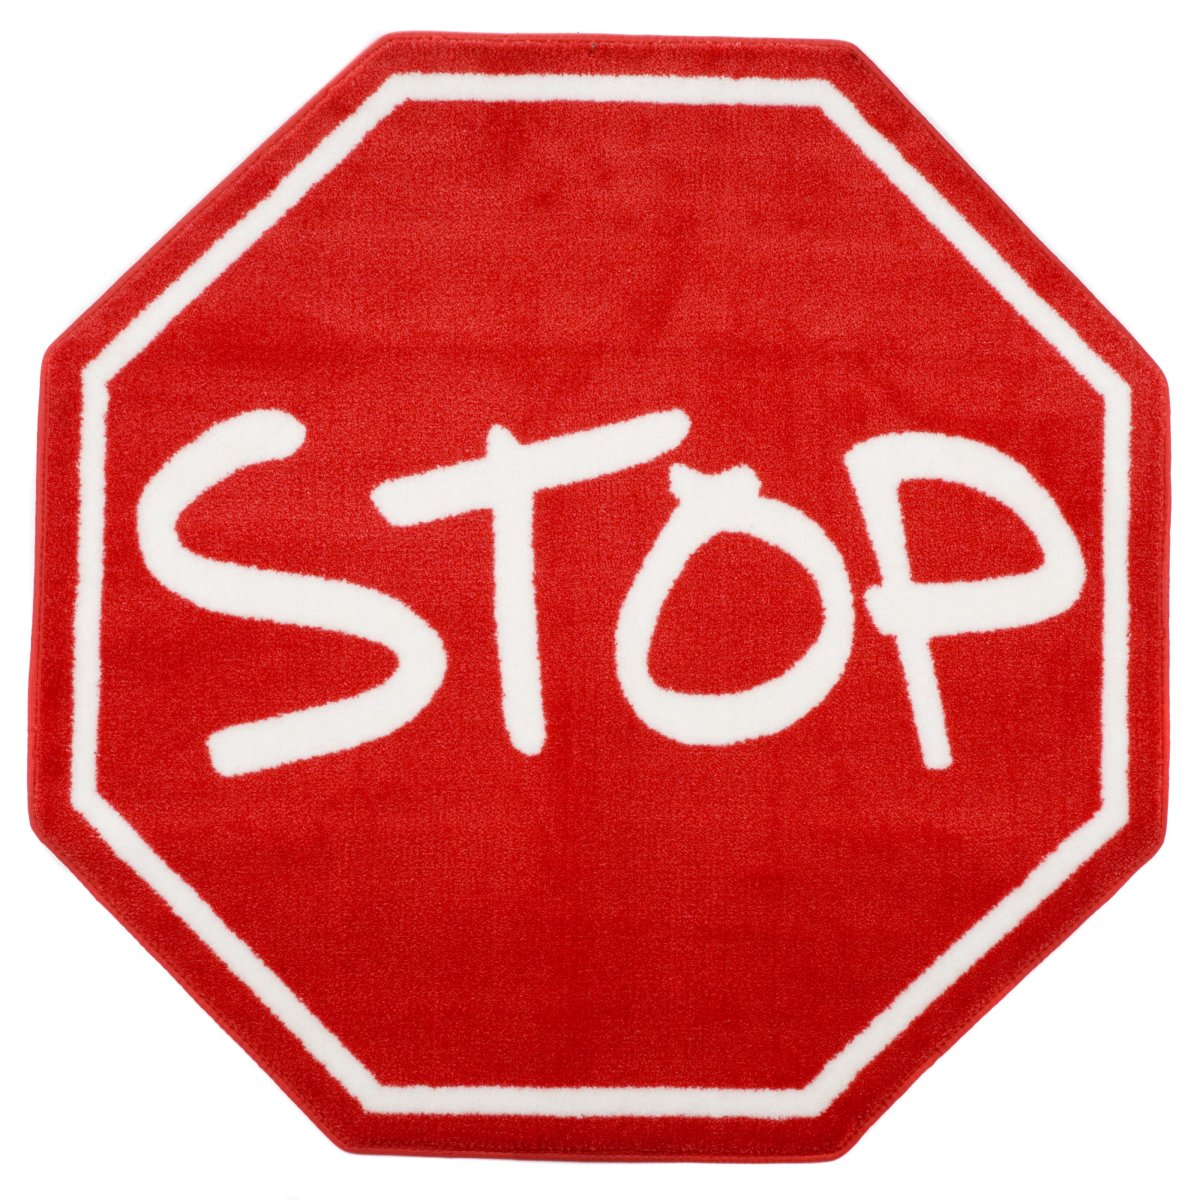 Image Of Stop Sign Clipart Best